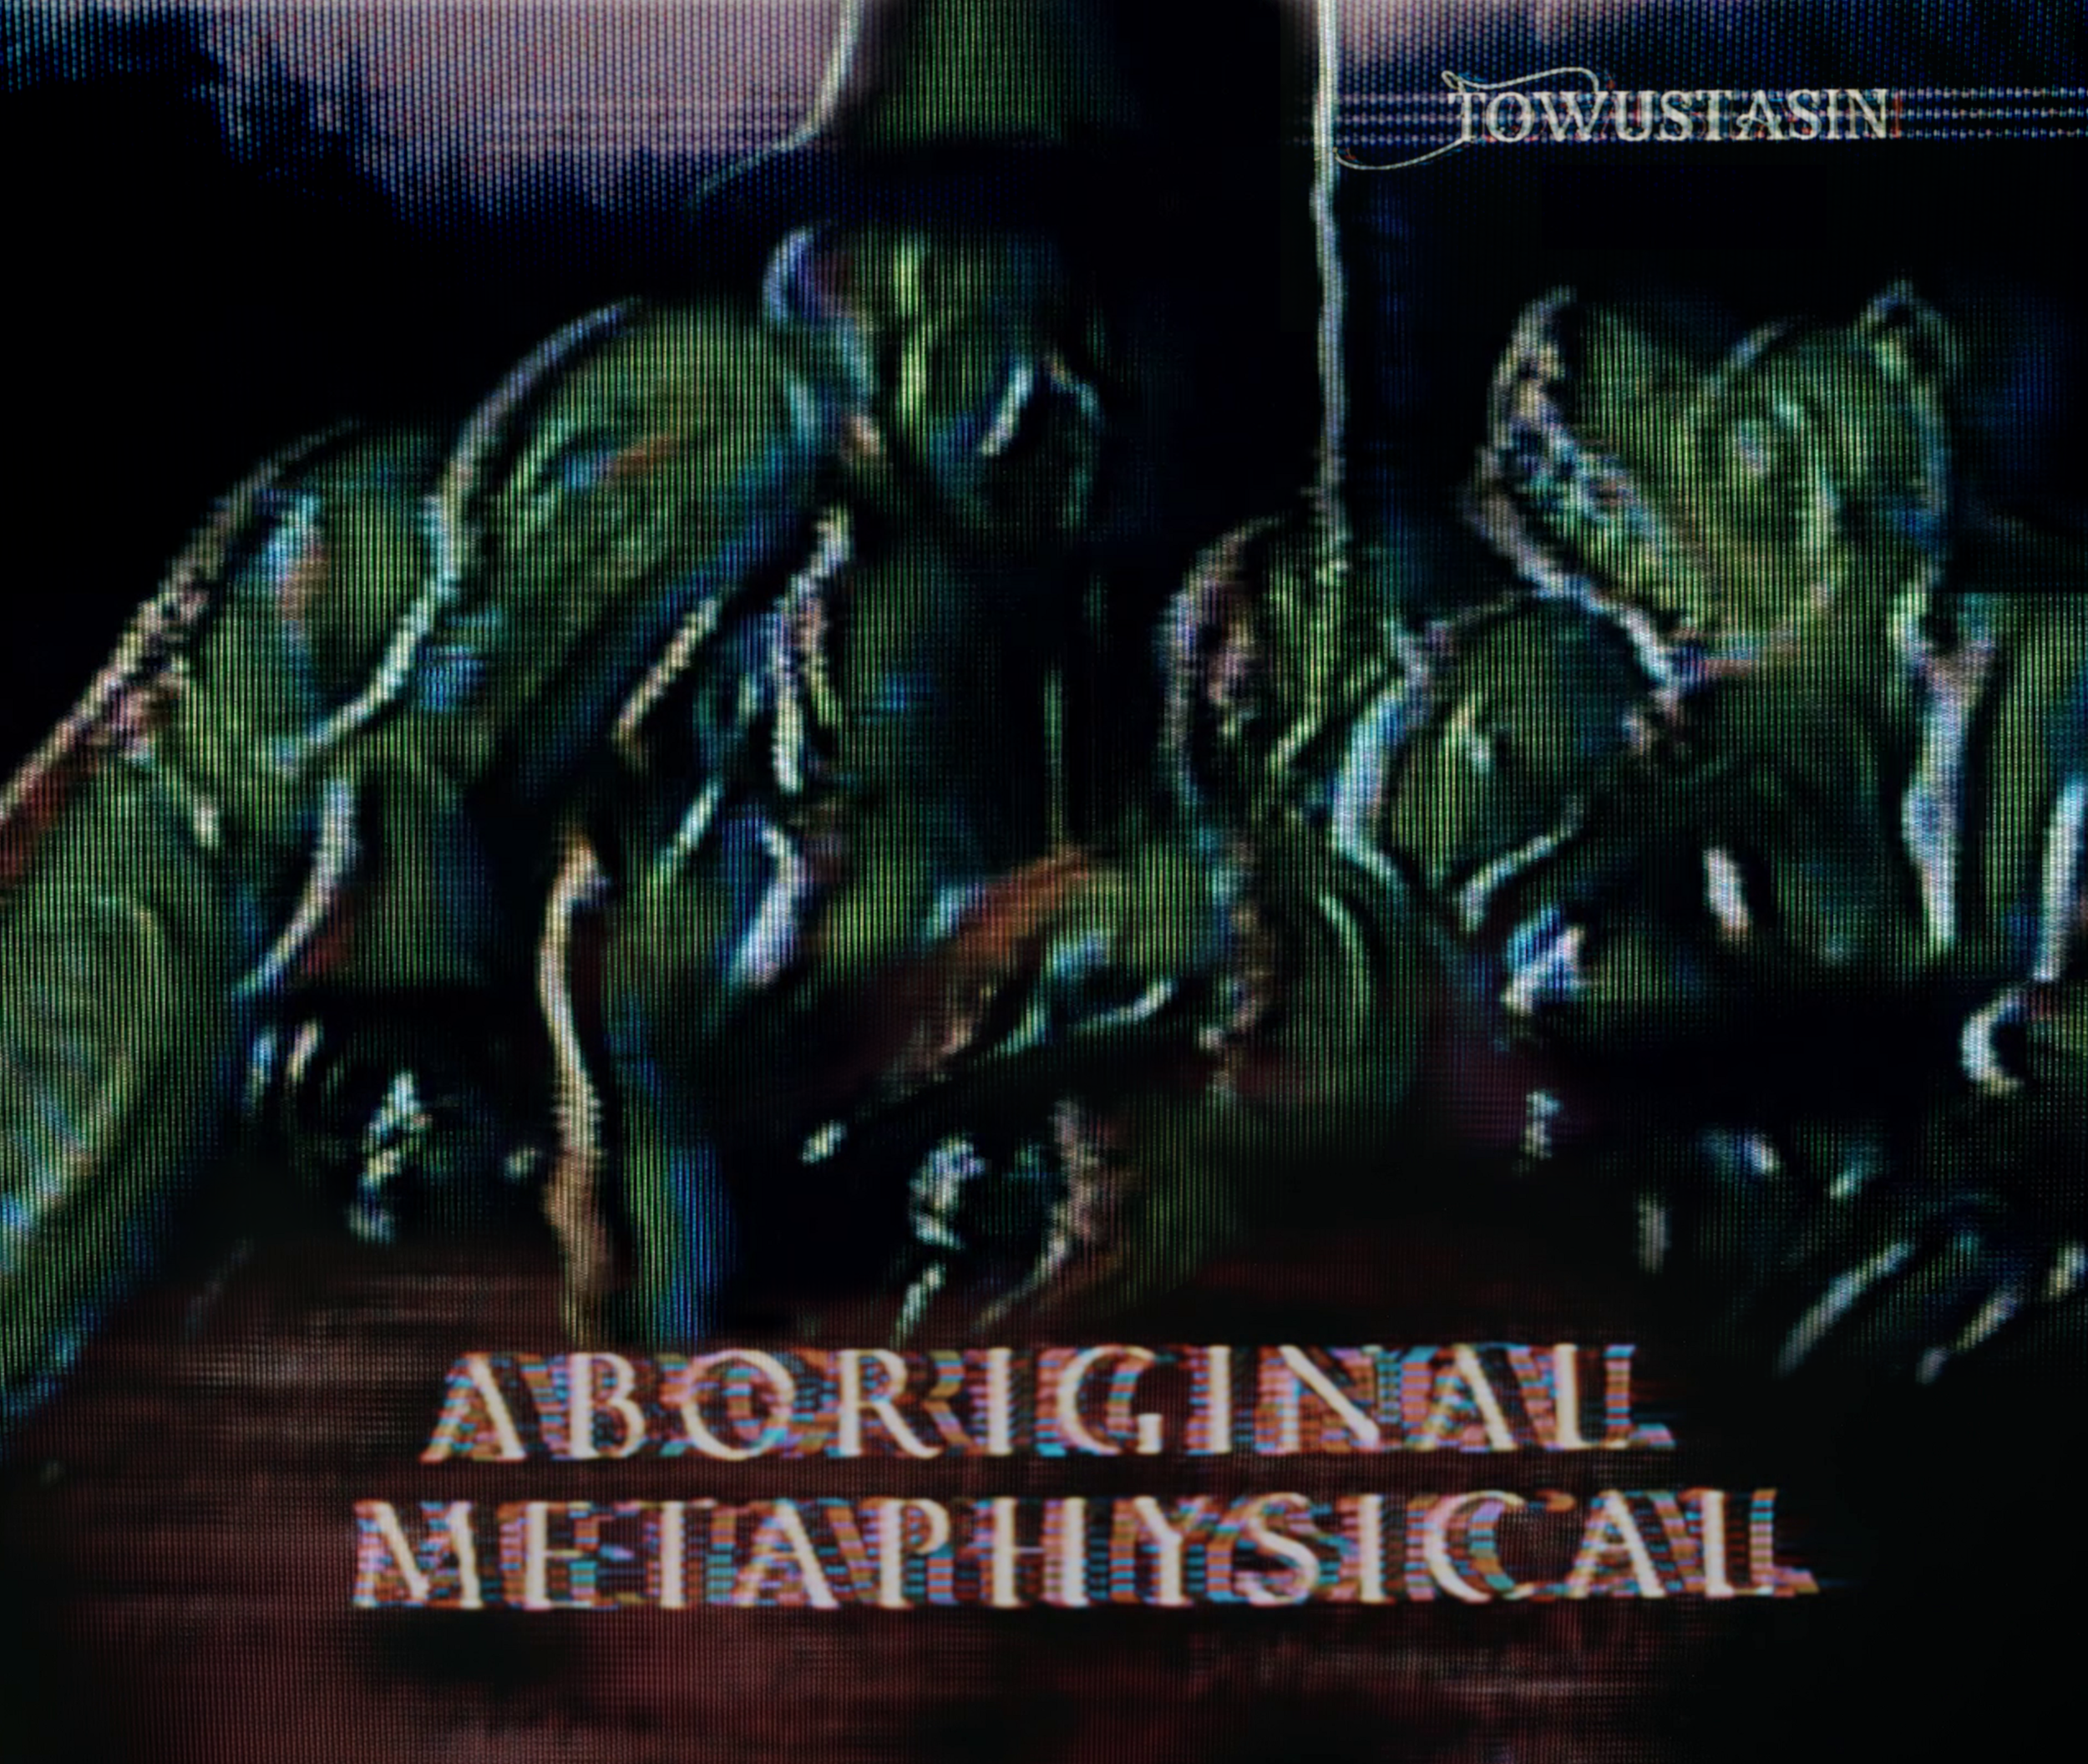 Aboriginal Metaphysical